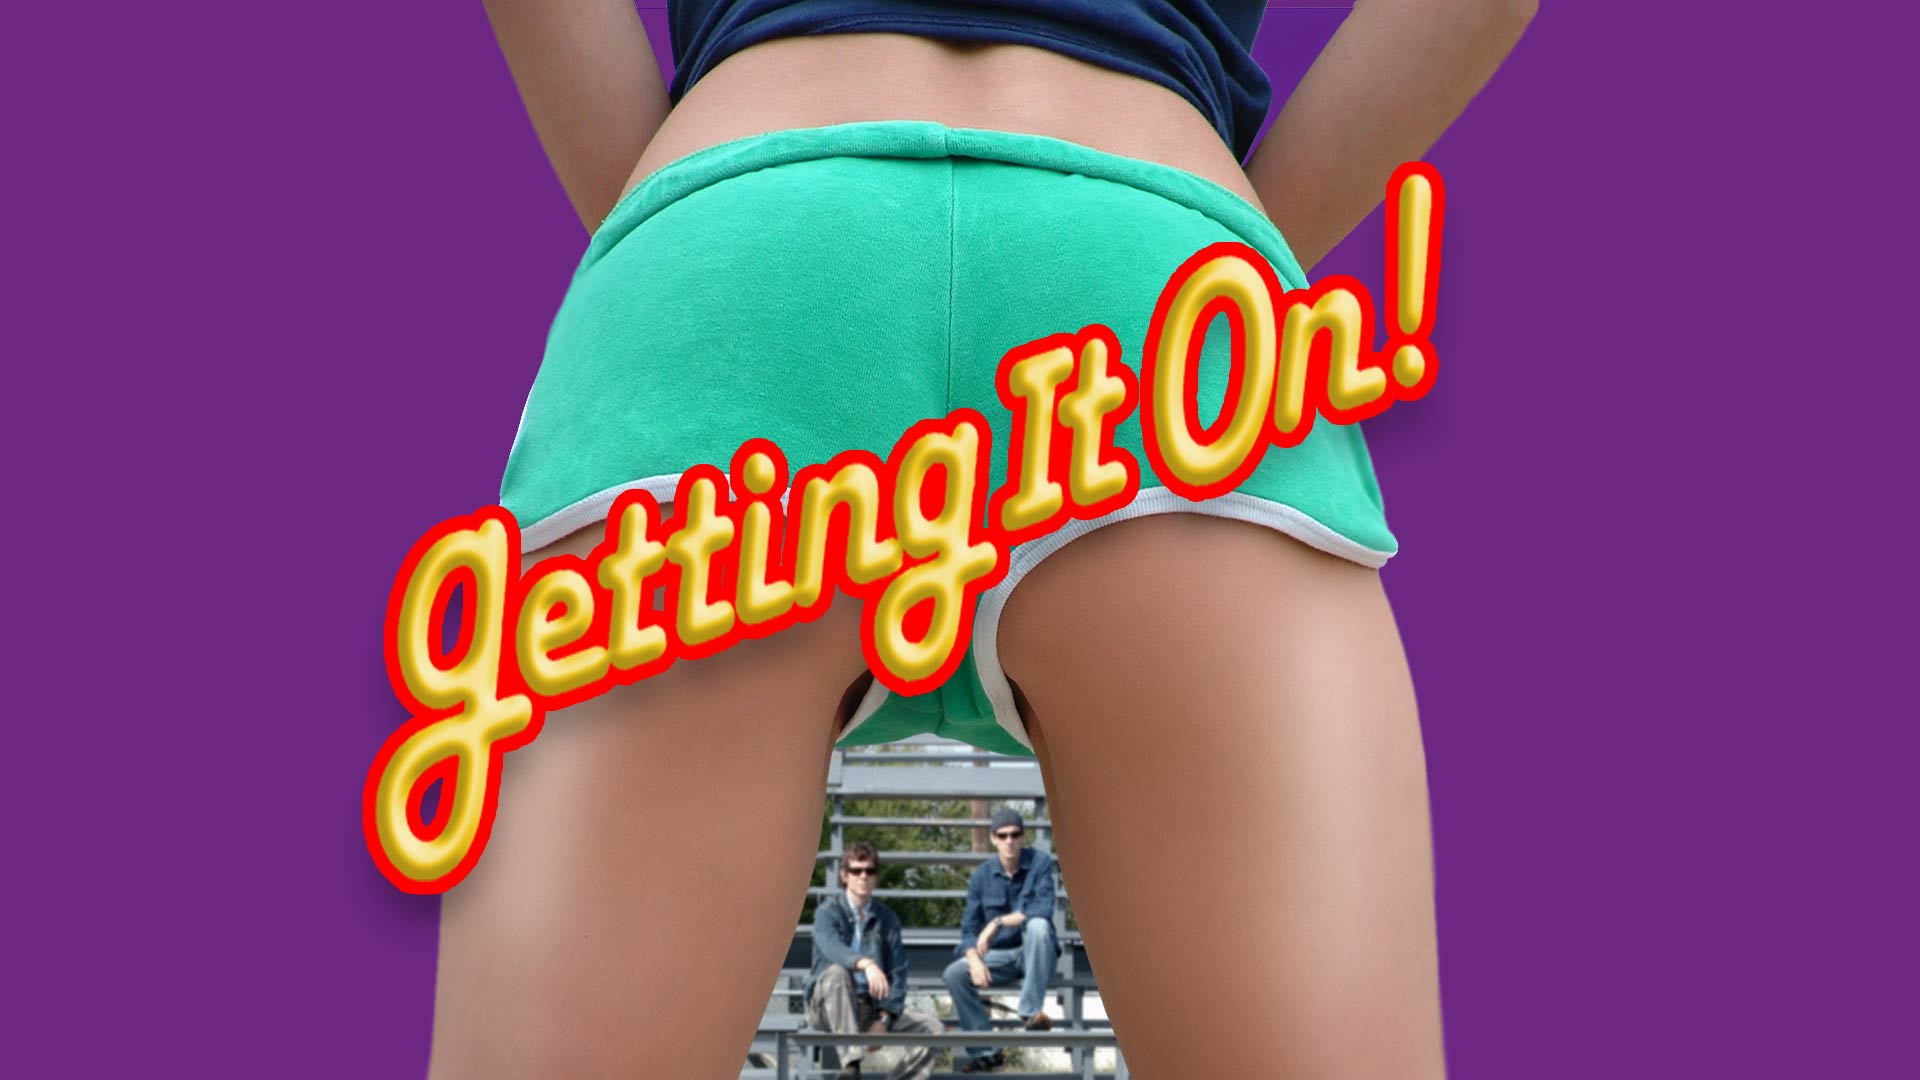 Getting It On Full Movie | Official Trailer | FlixHouse